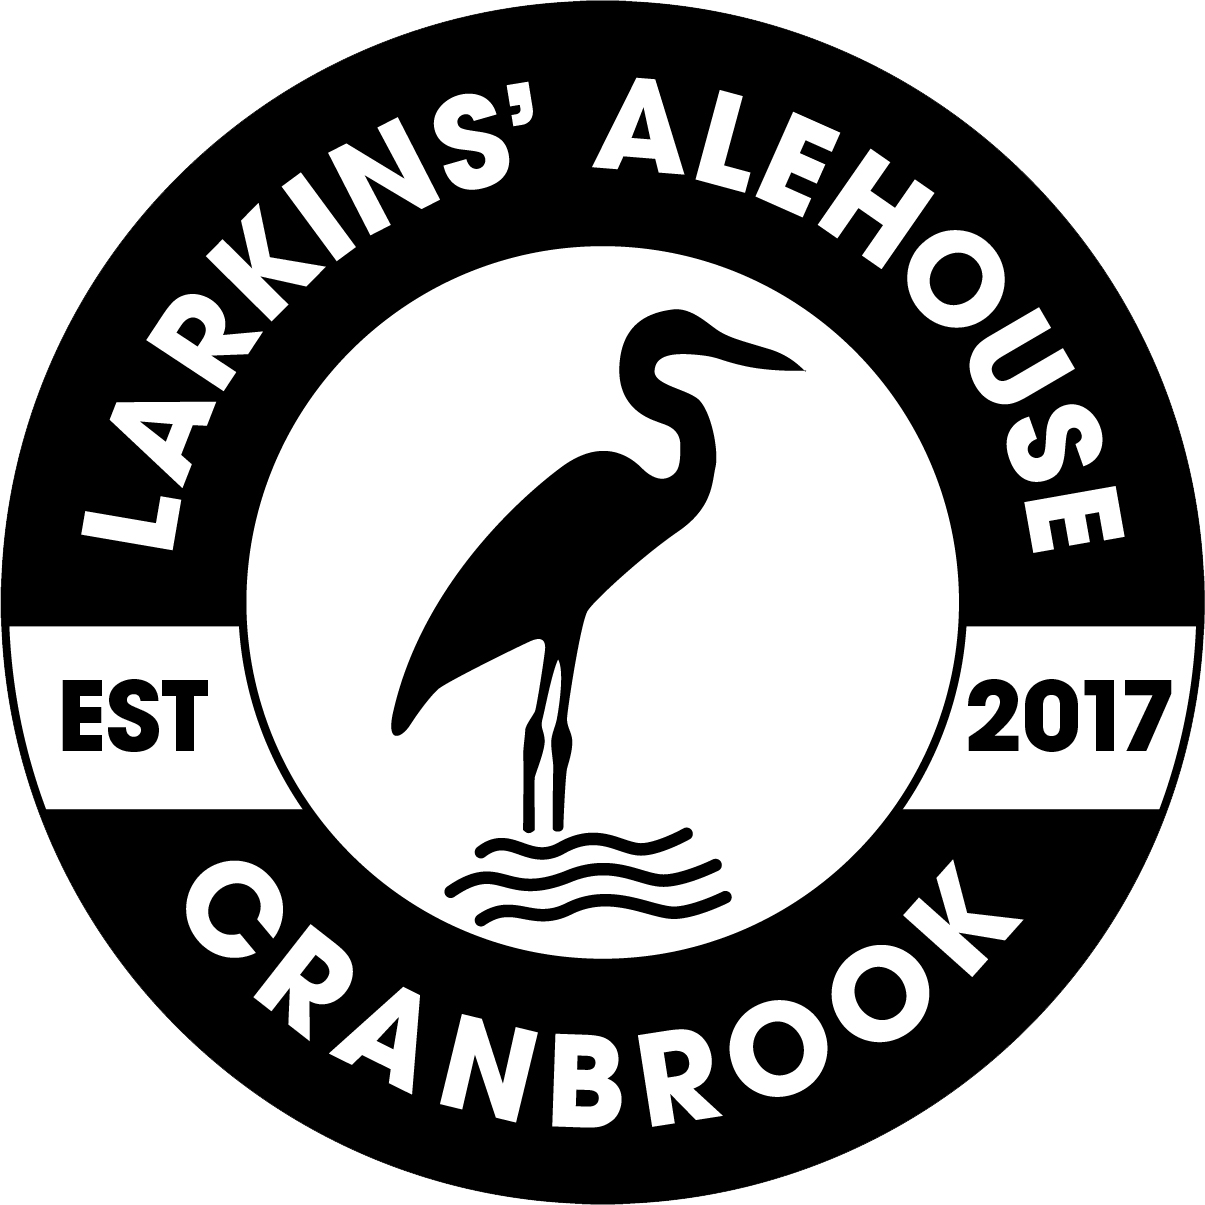 Larkins' Alehouse Logo